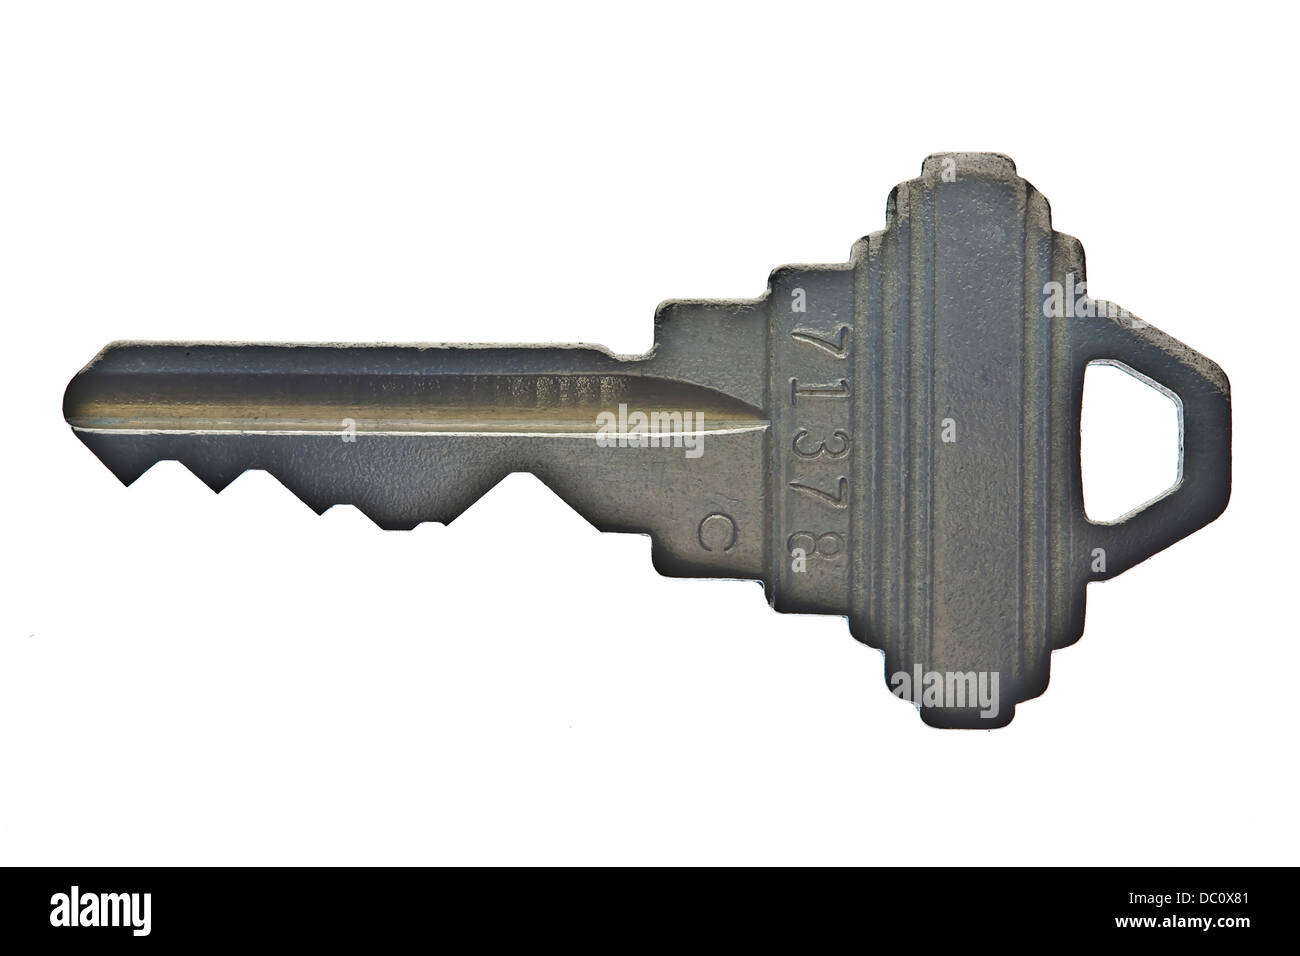 weathered key for house or apartment door lock - Stock Image